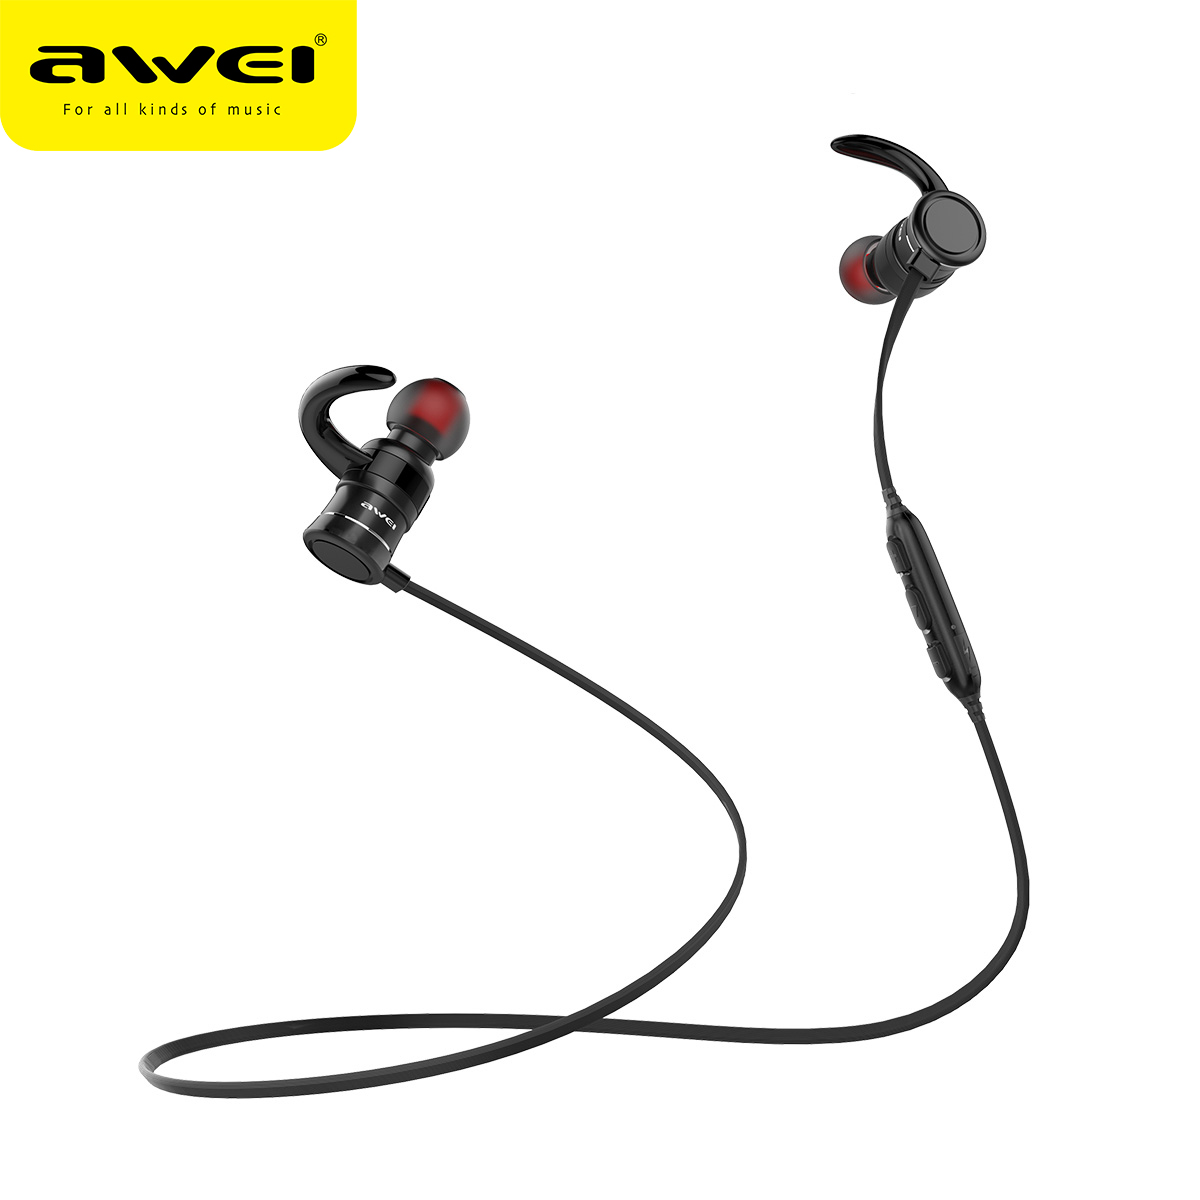 AWEI AK5 Bluetooth Heaphone Wireless Earphone With Magnetic Headset bluetooth Earfone Auriculares Kulakl k cordless earpiece кабель микрофонный onetech pro two xlr xlr 10 m